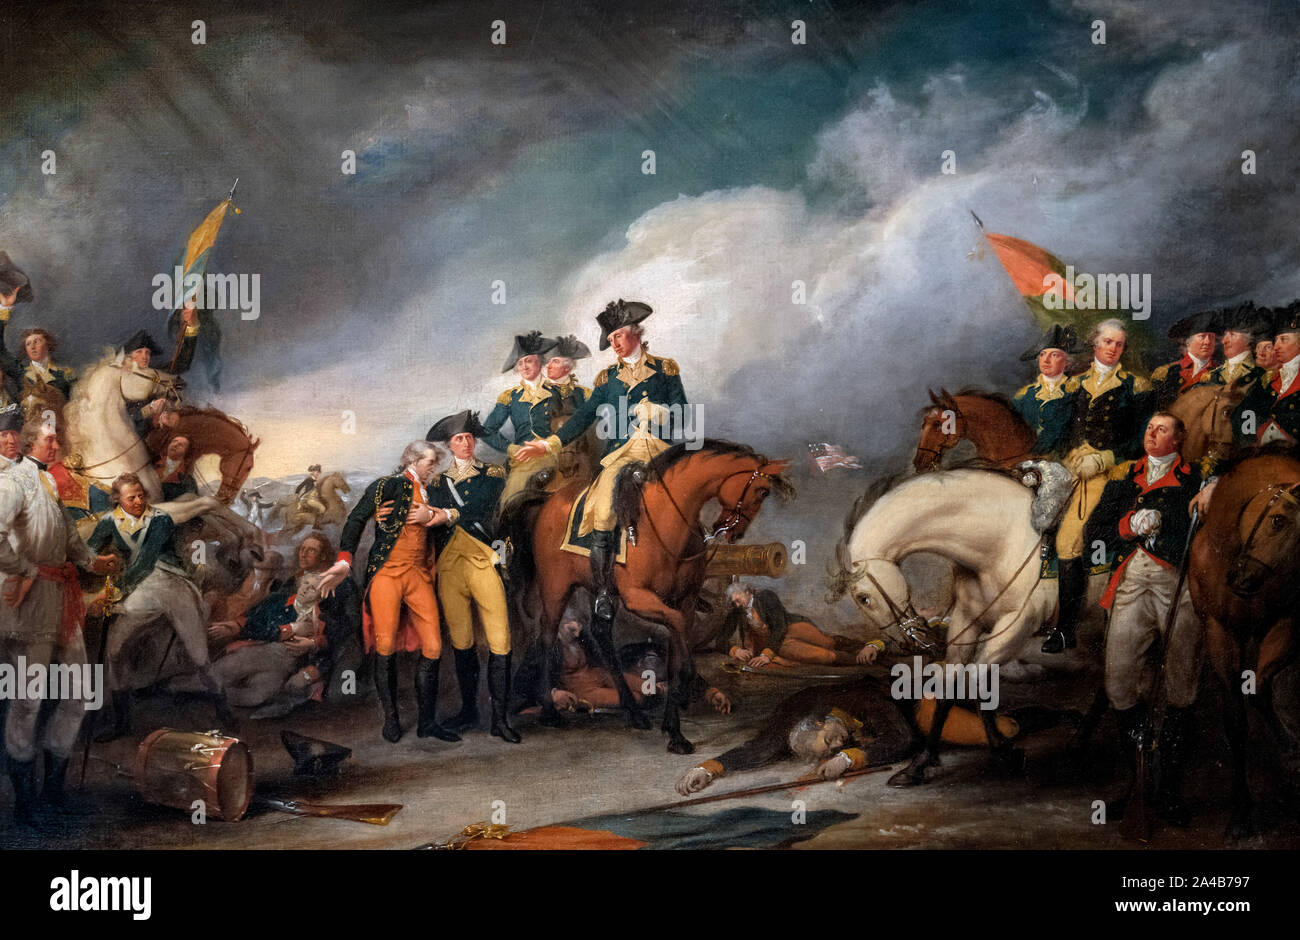 24. The Battle of Trenton (Young Heroes of the American Revolution)